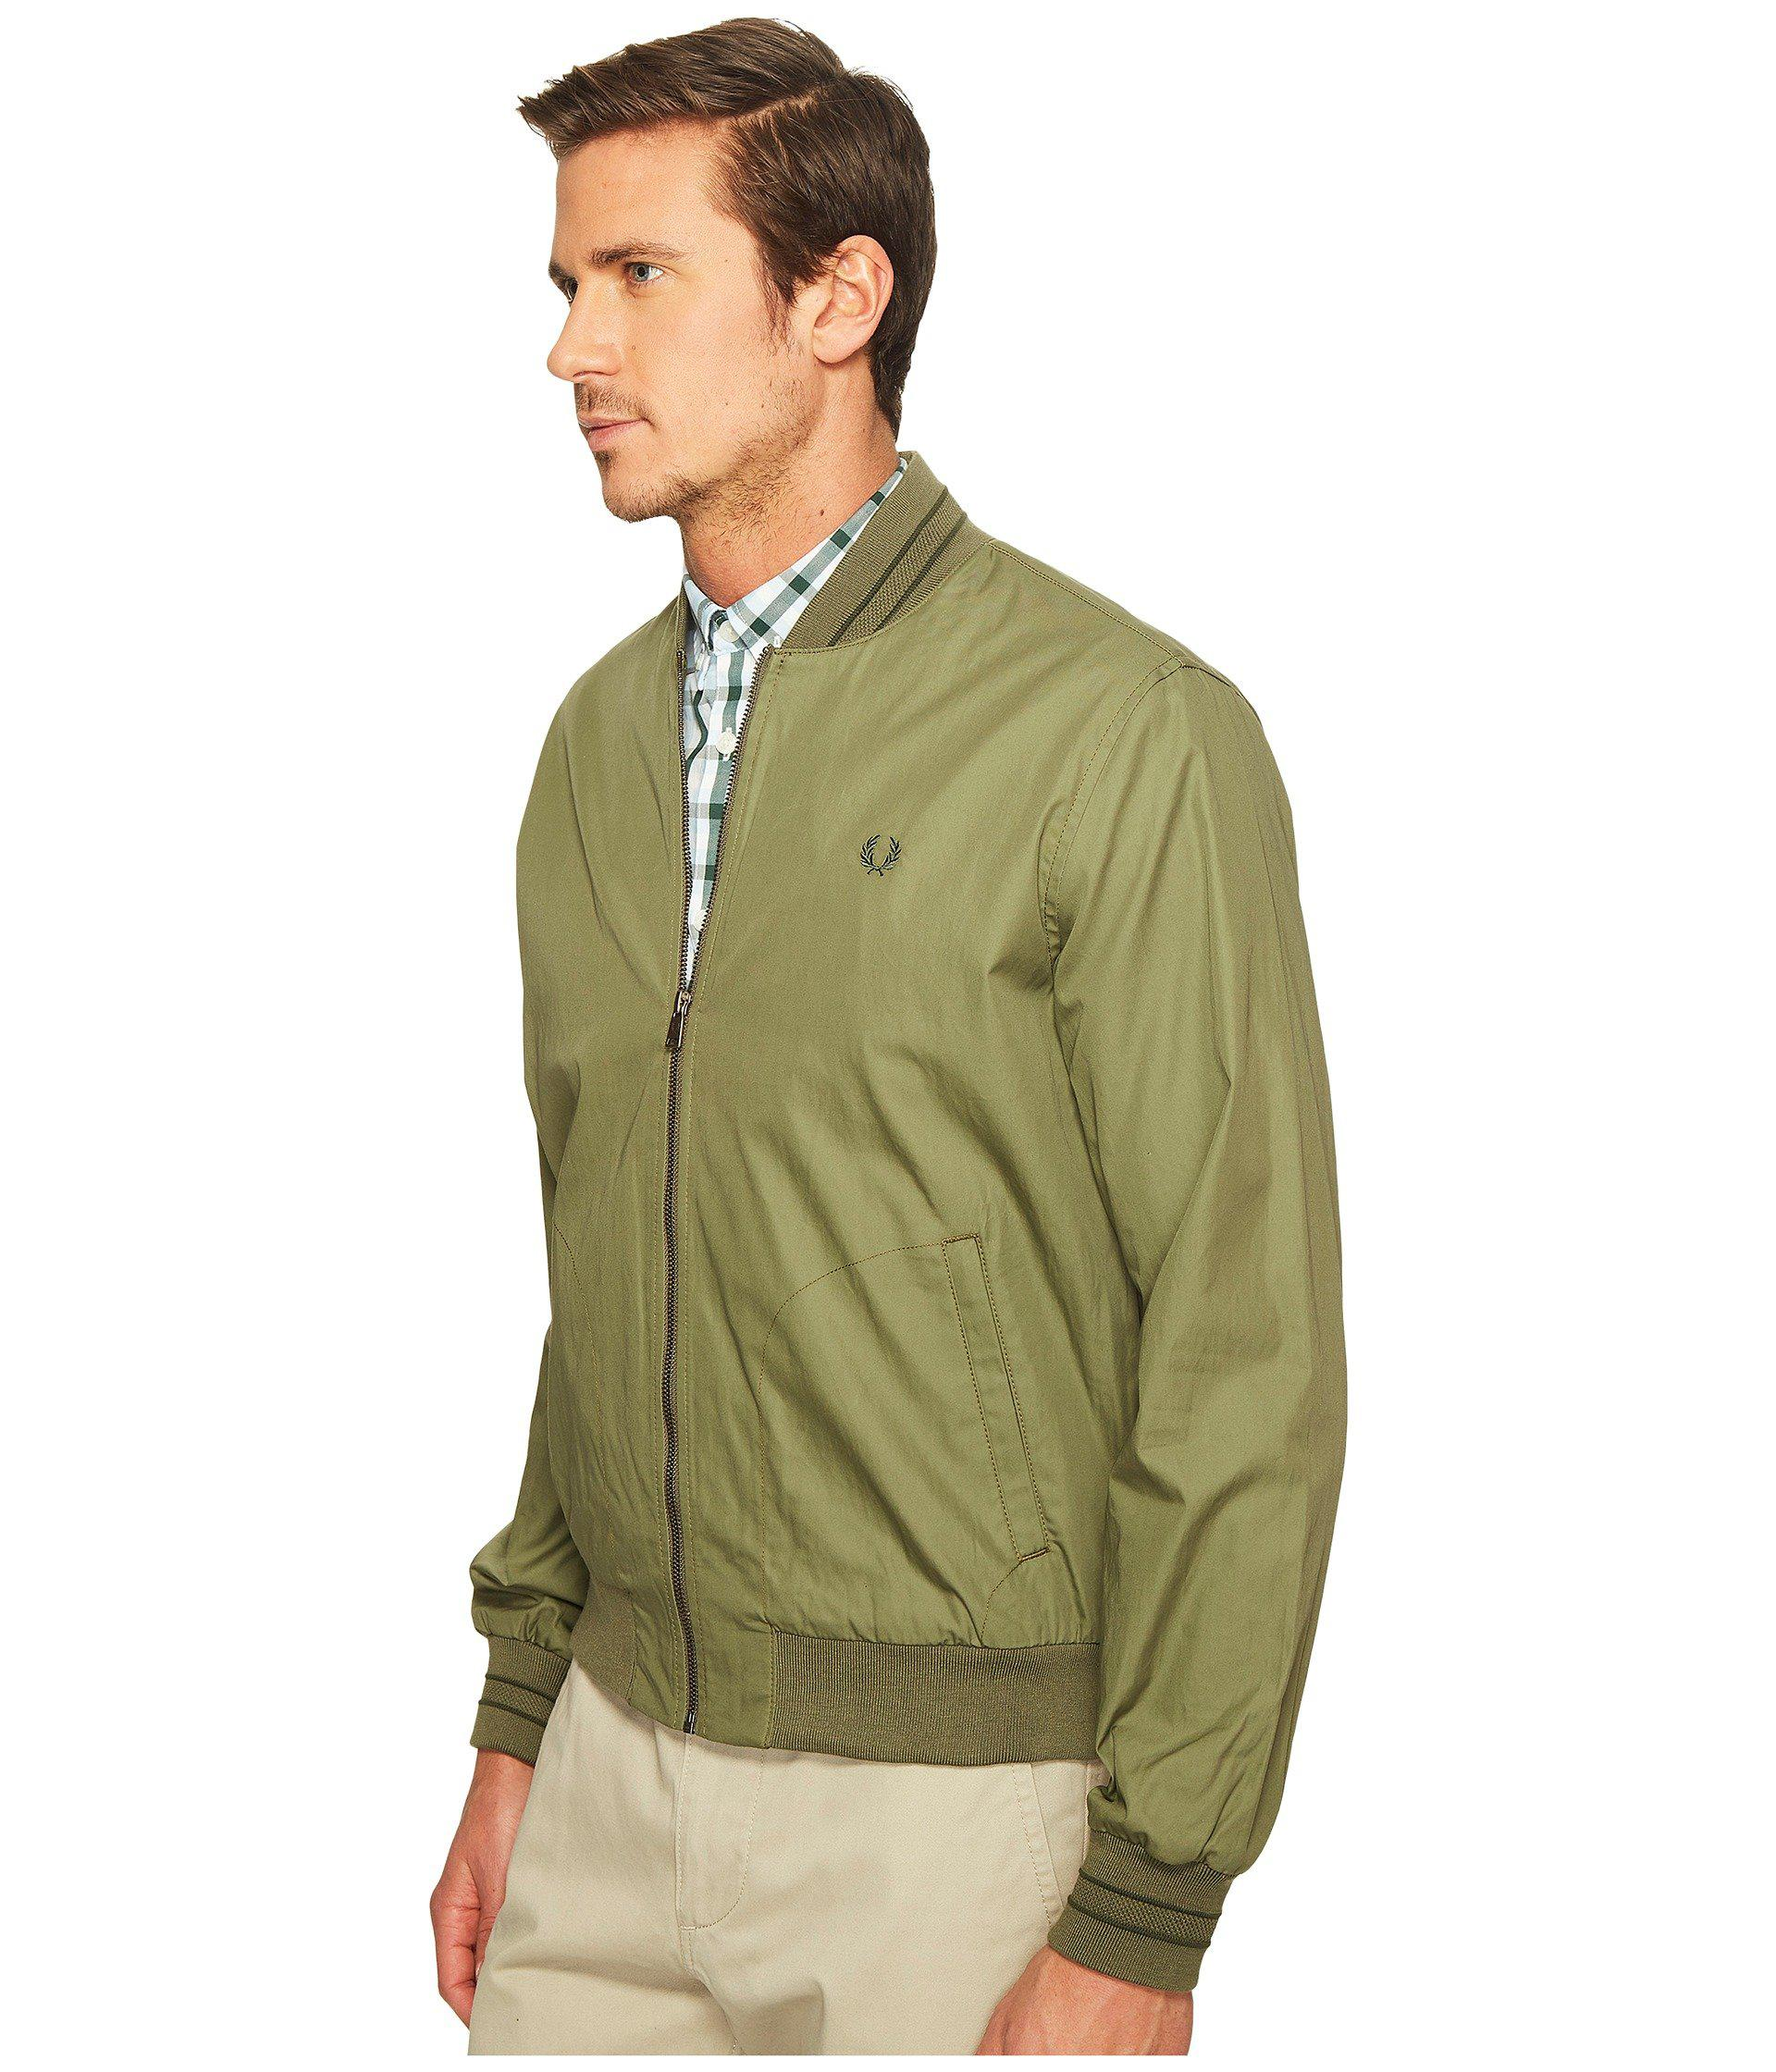 2b8d89337 Lyst - Fred Perry Tramline Bomber Jacket in Green for Men